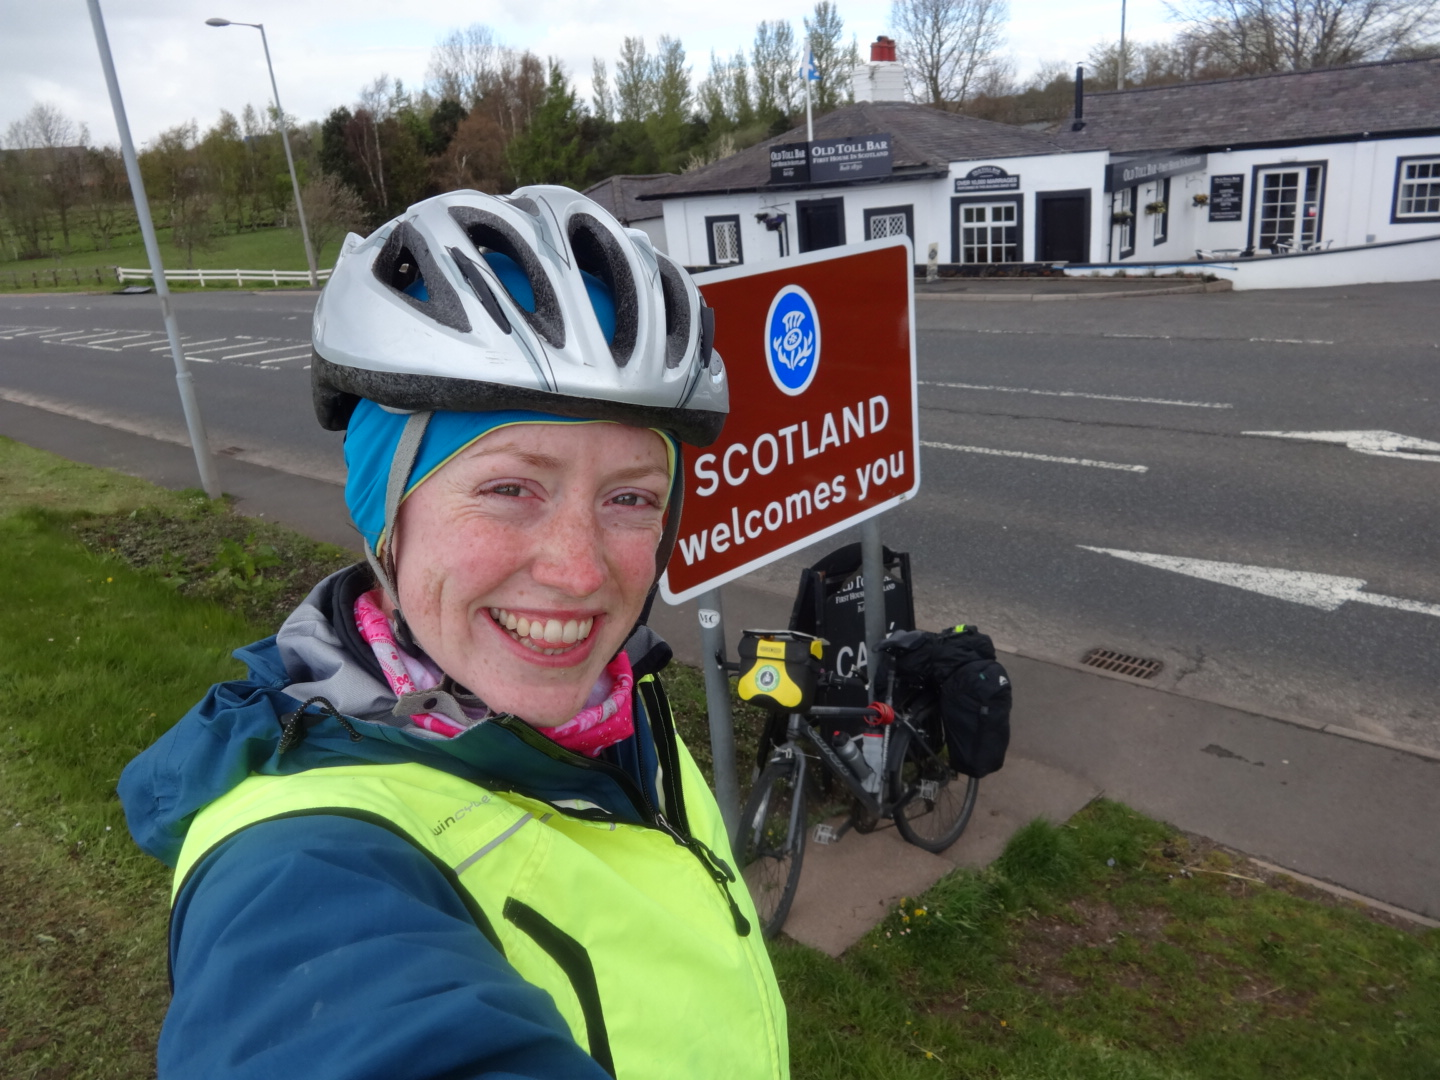 Scotland welcomes you on your bike